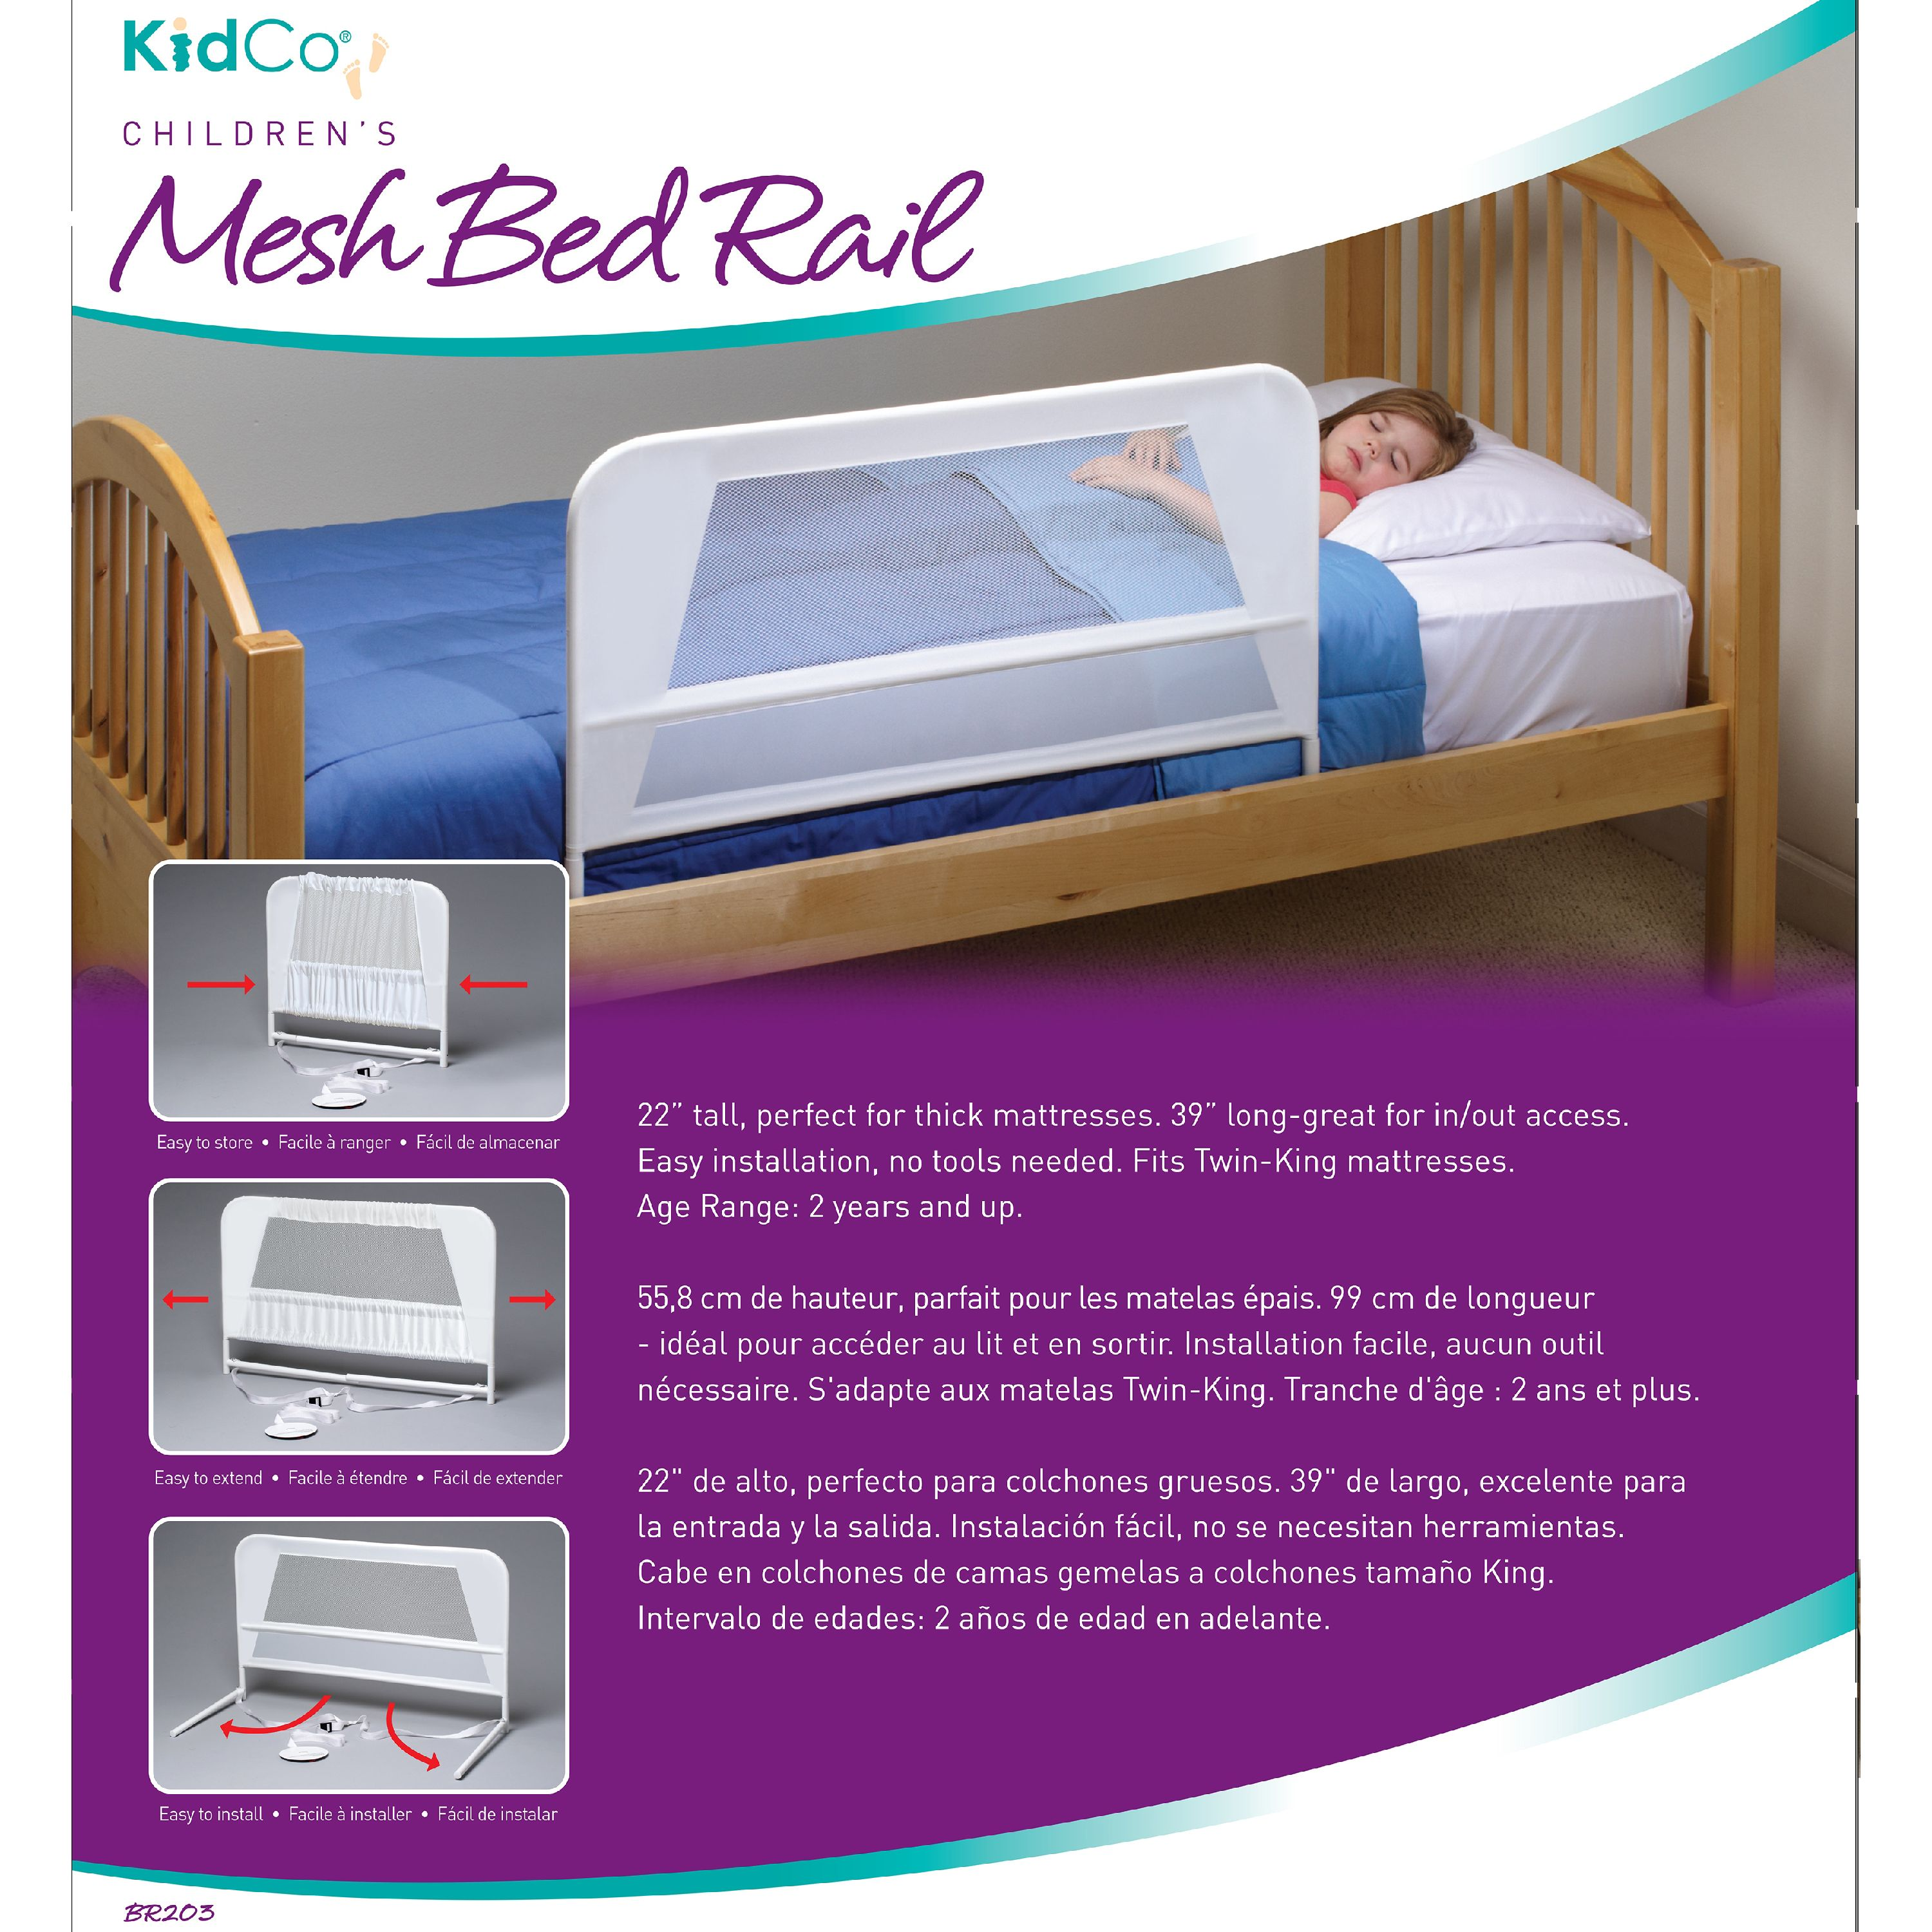 KidCo Children's Mesh Bed Rail 2PK   Walmart.com